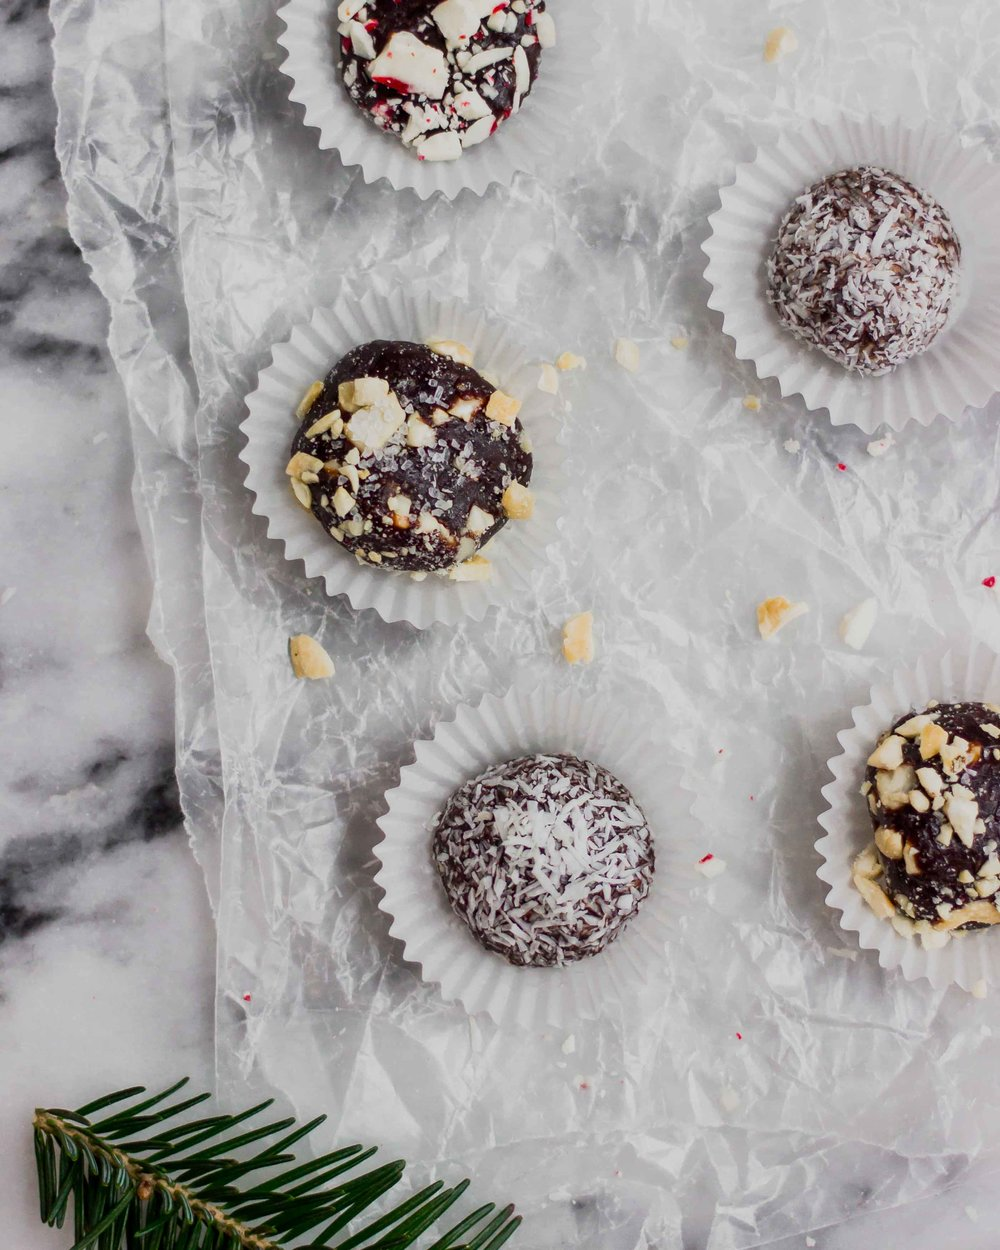 Brazilian Brigadeiros - Brazilian Chewy Chocolate Truffles - The Well Essentials #glutenfree